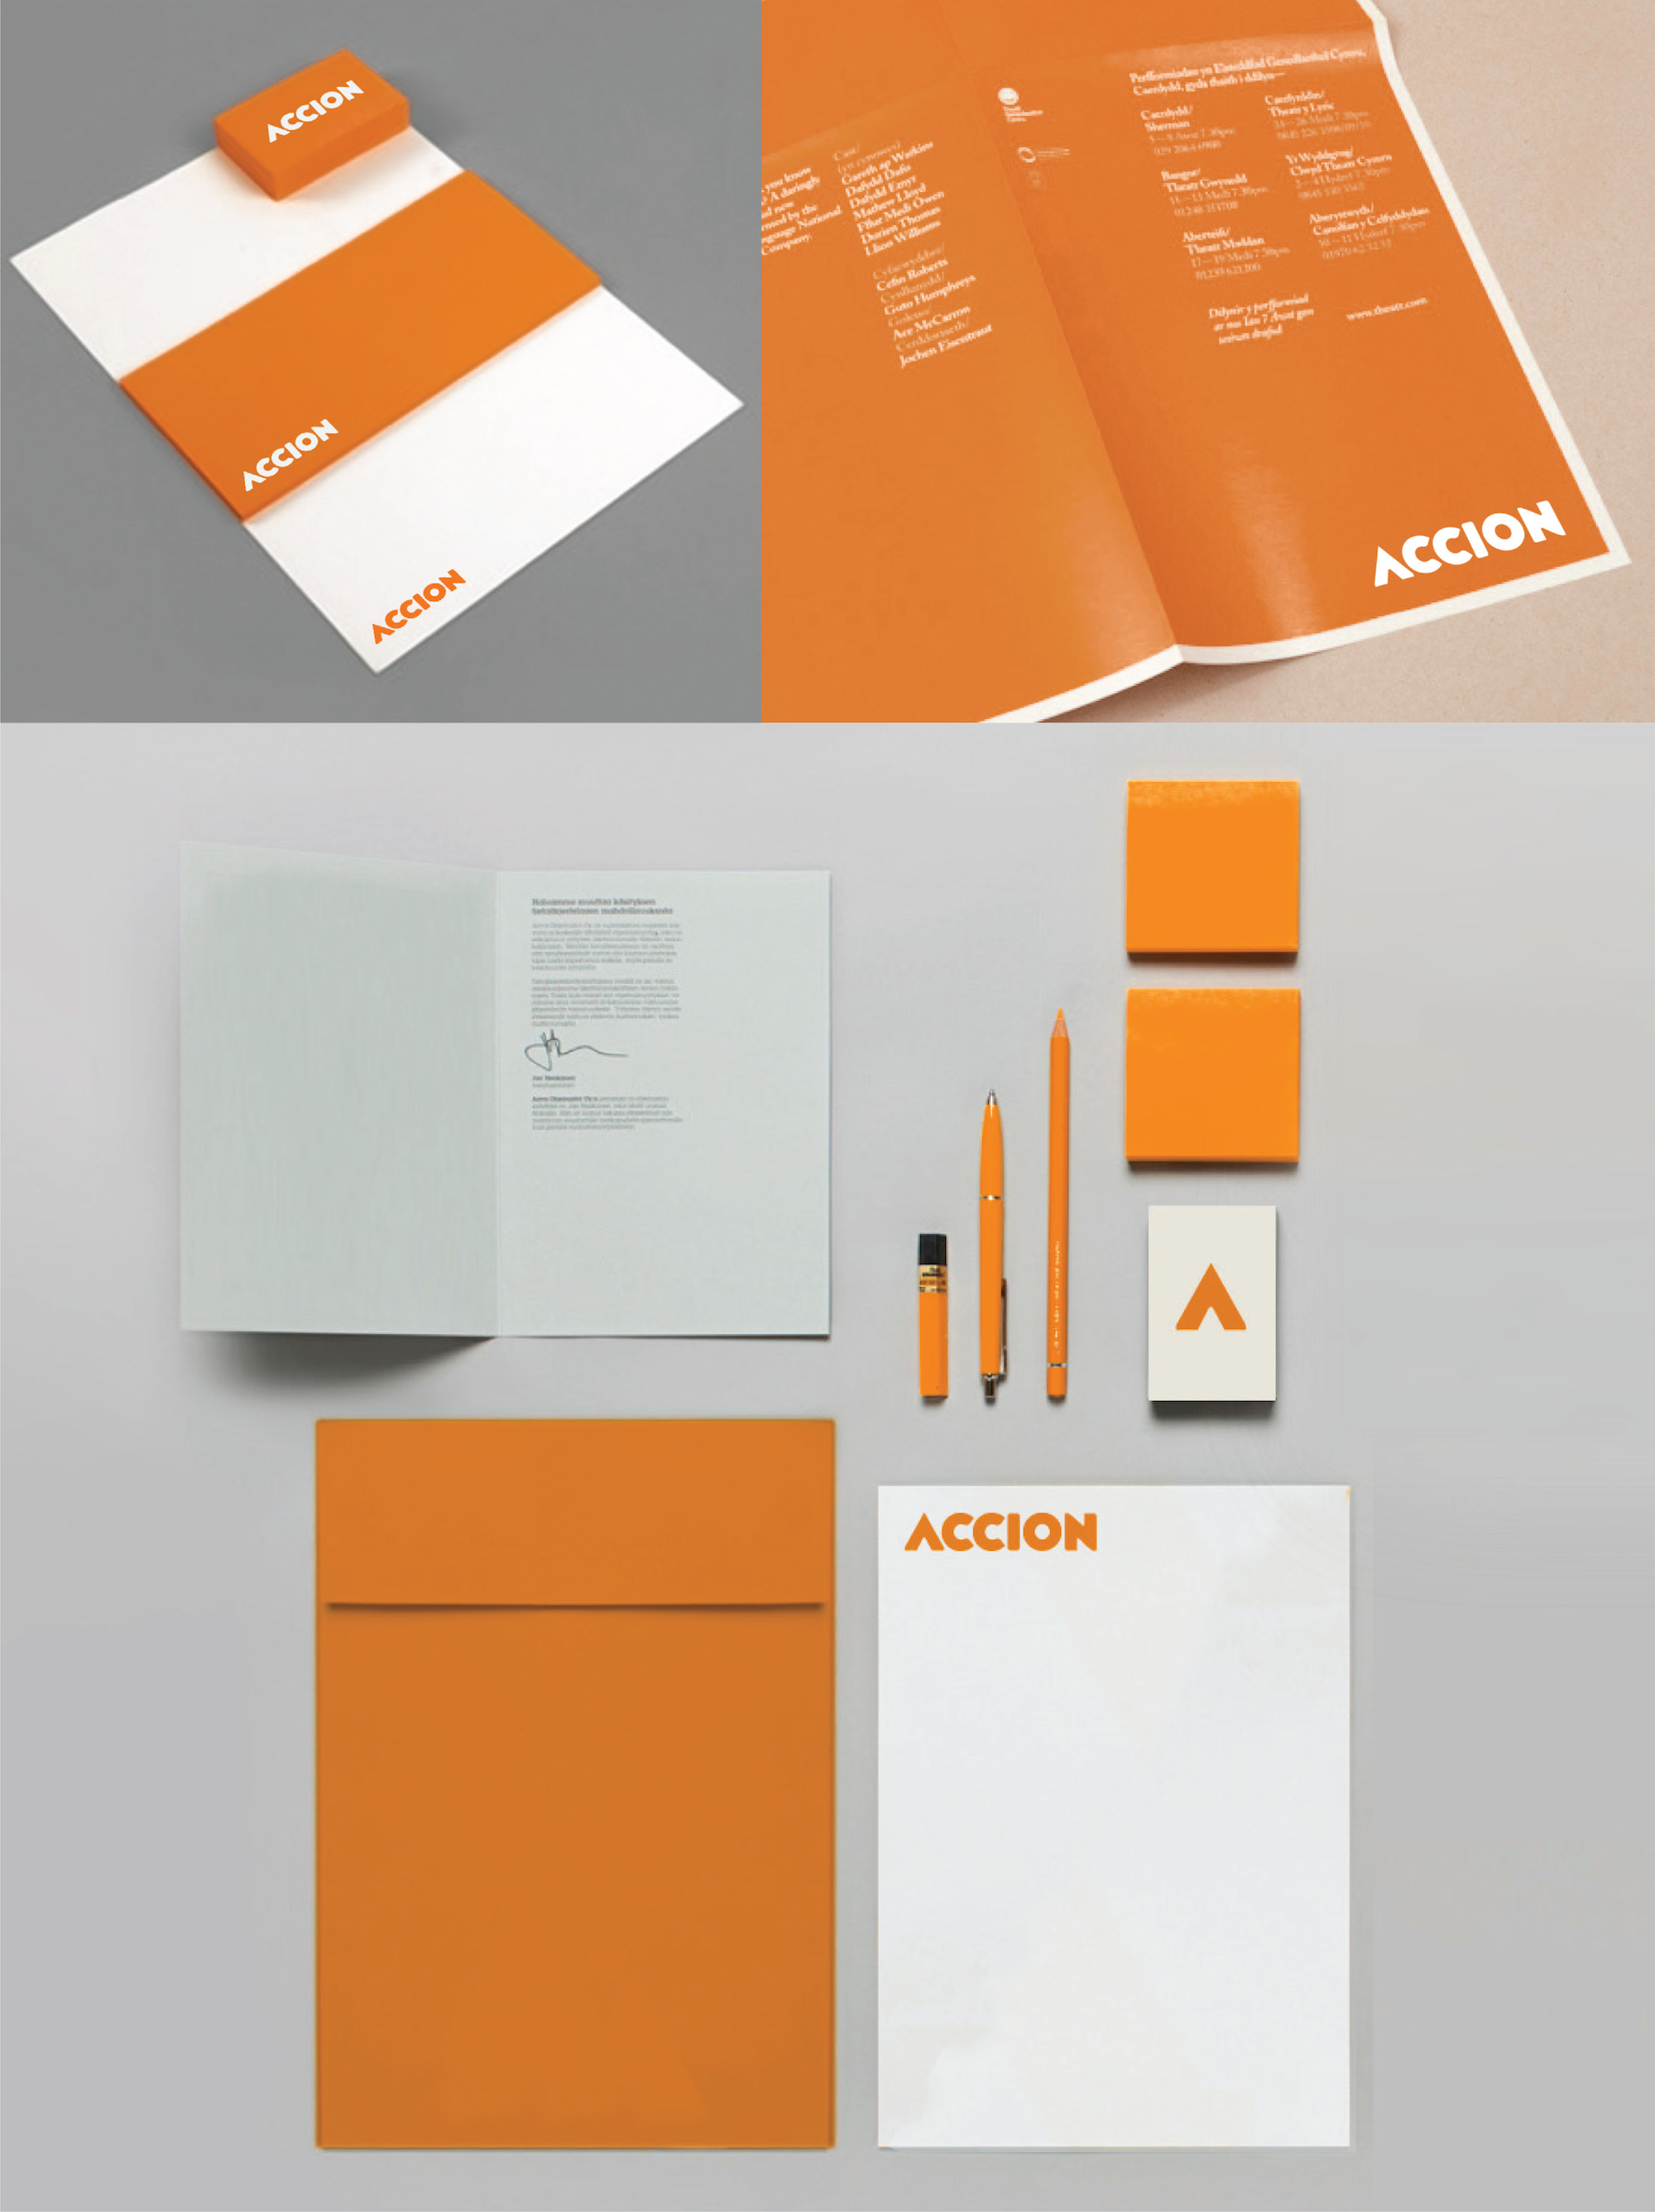 Accion stationery, paper products